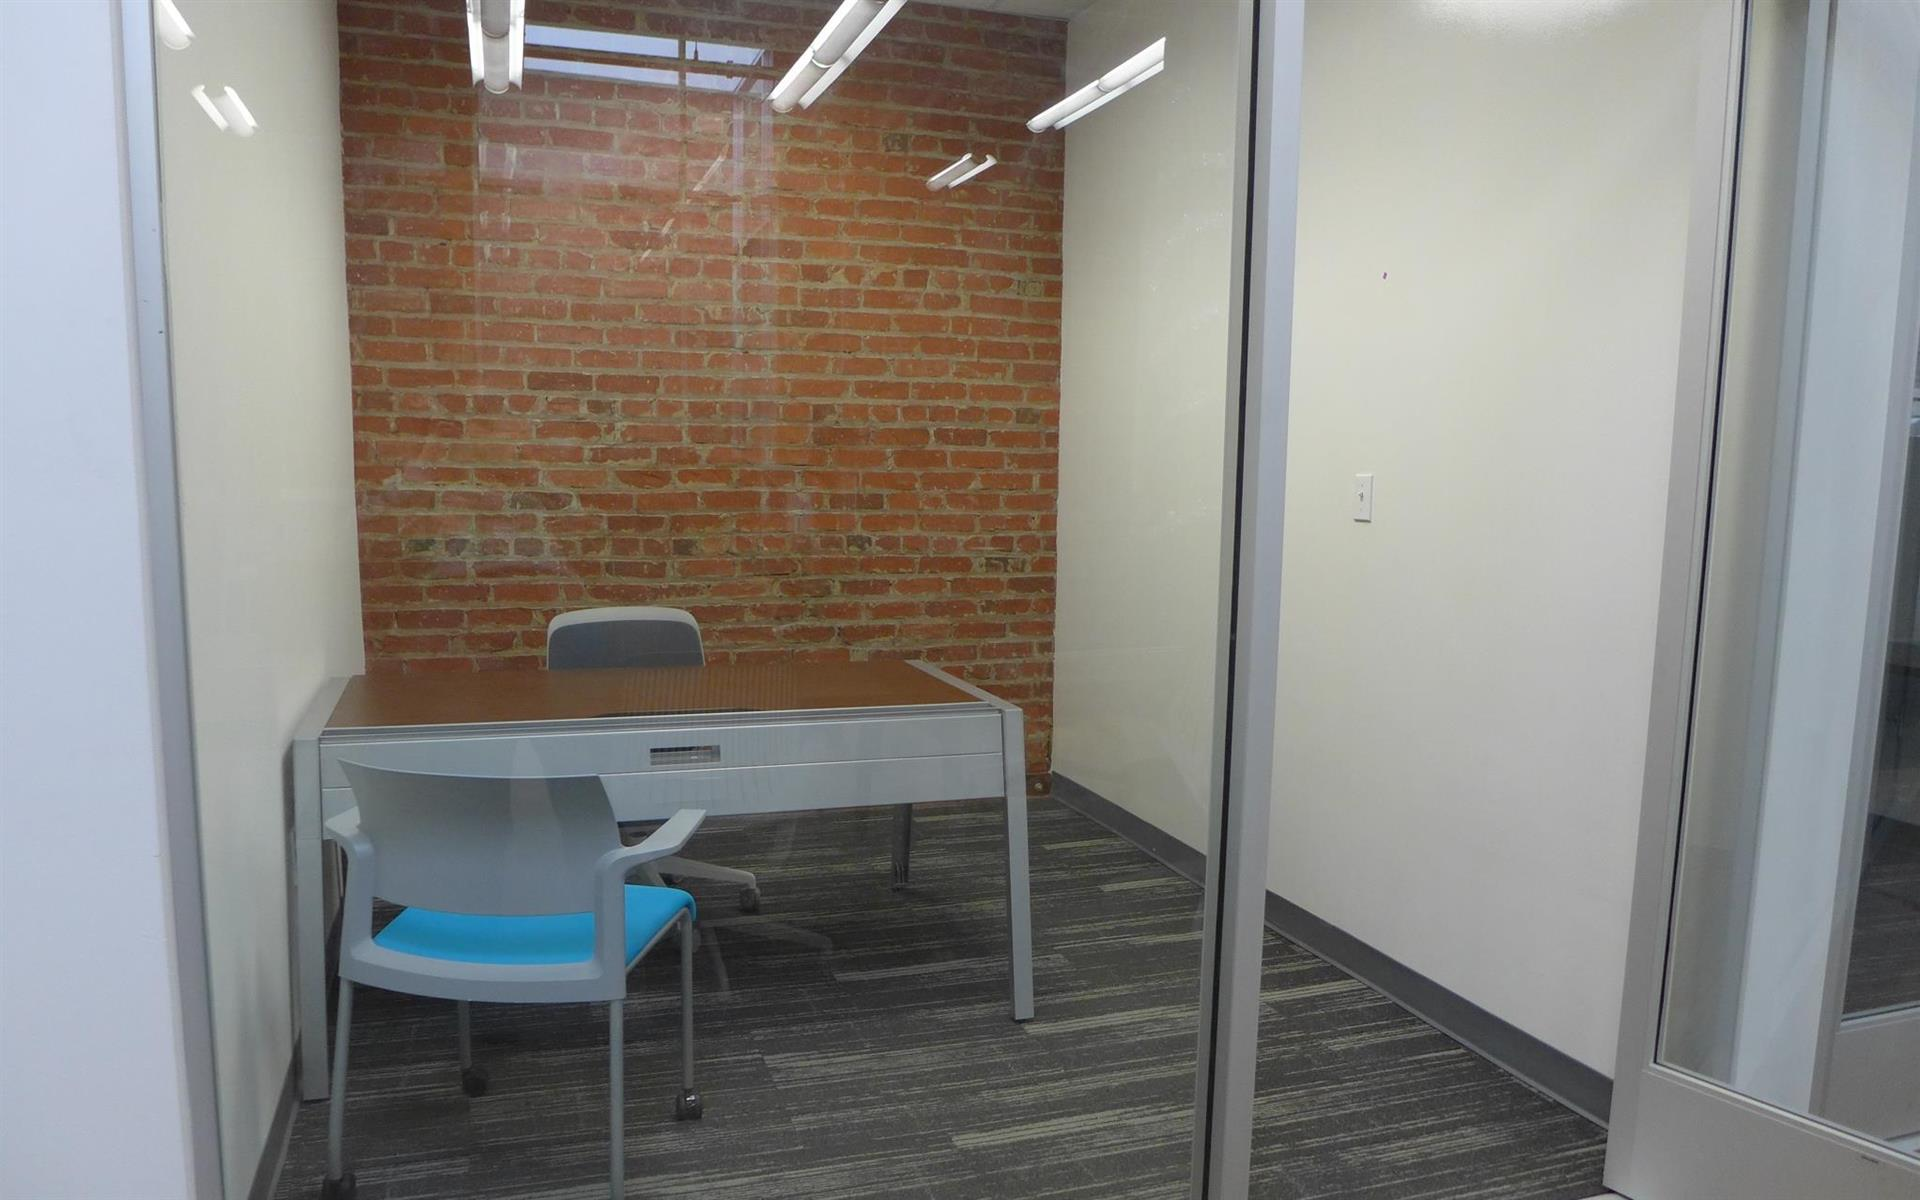 BLANKSPACES DTLA - Medium Private Office for 1